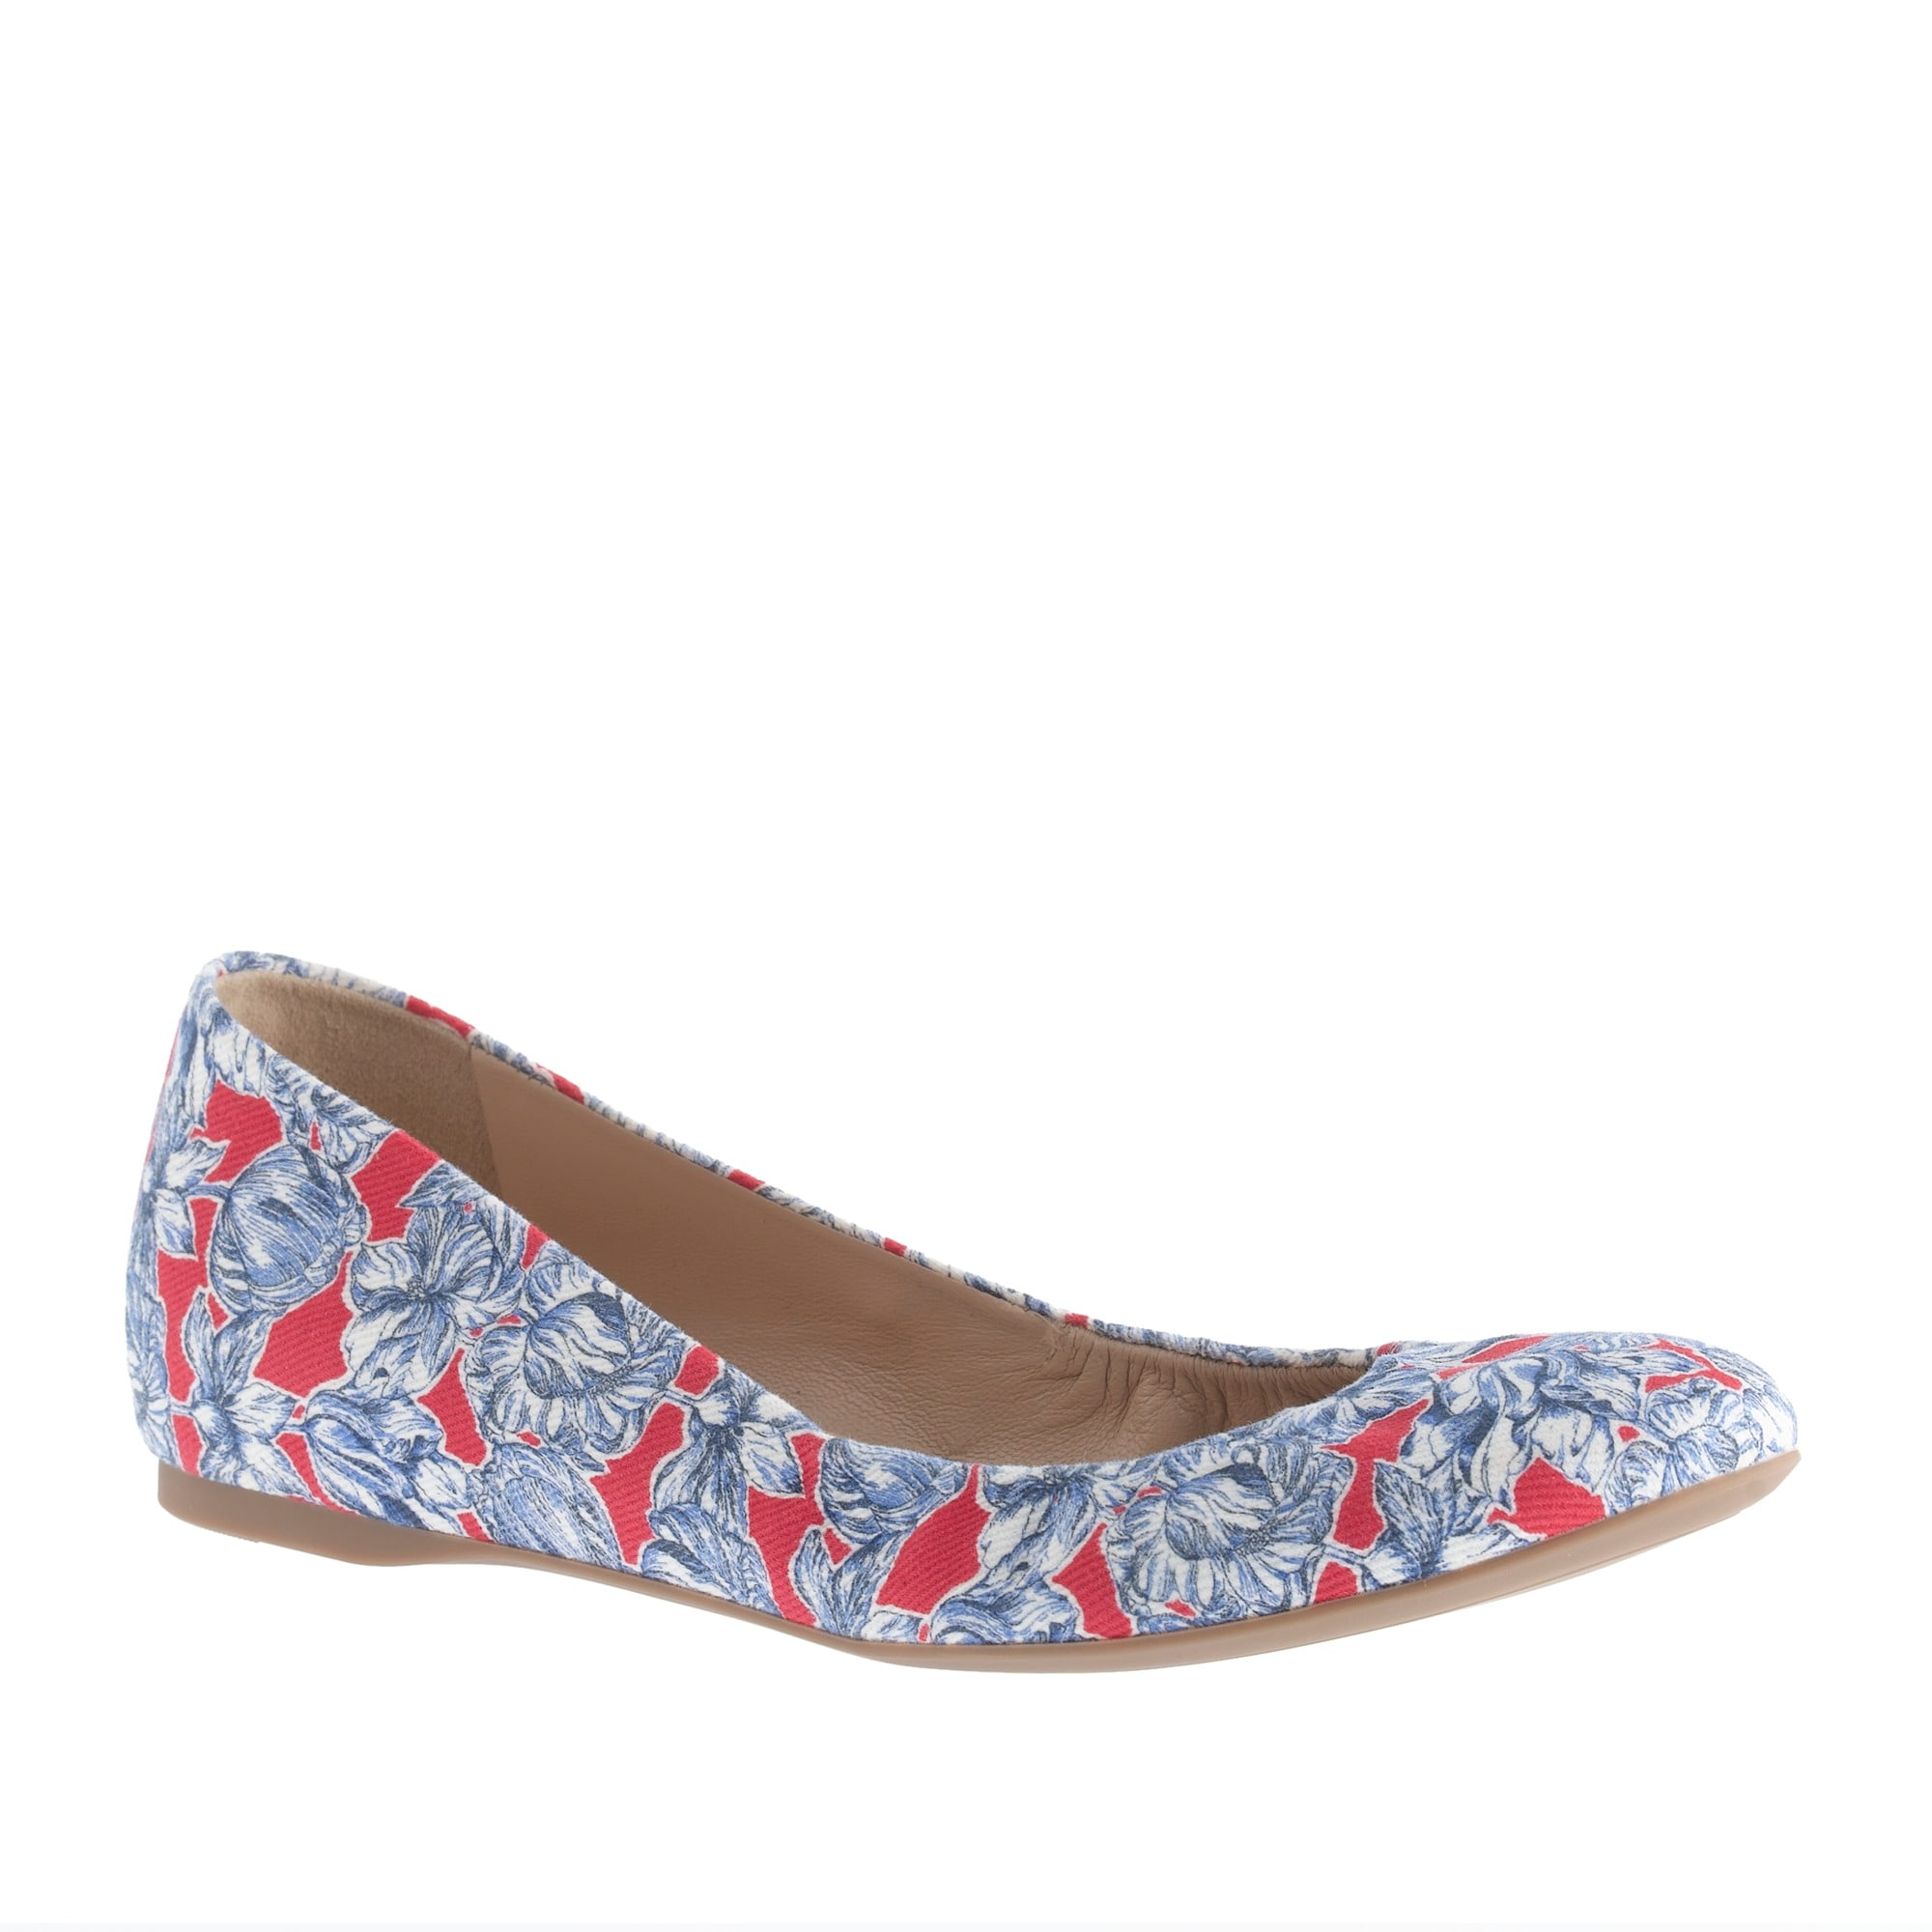 Collection Cece Liberty floral ballet flats